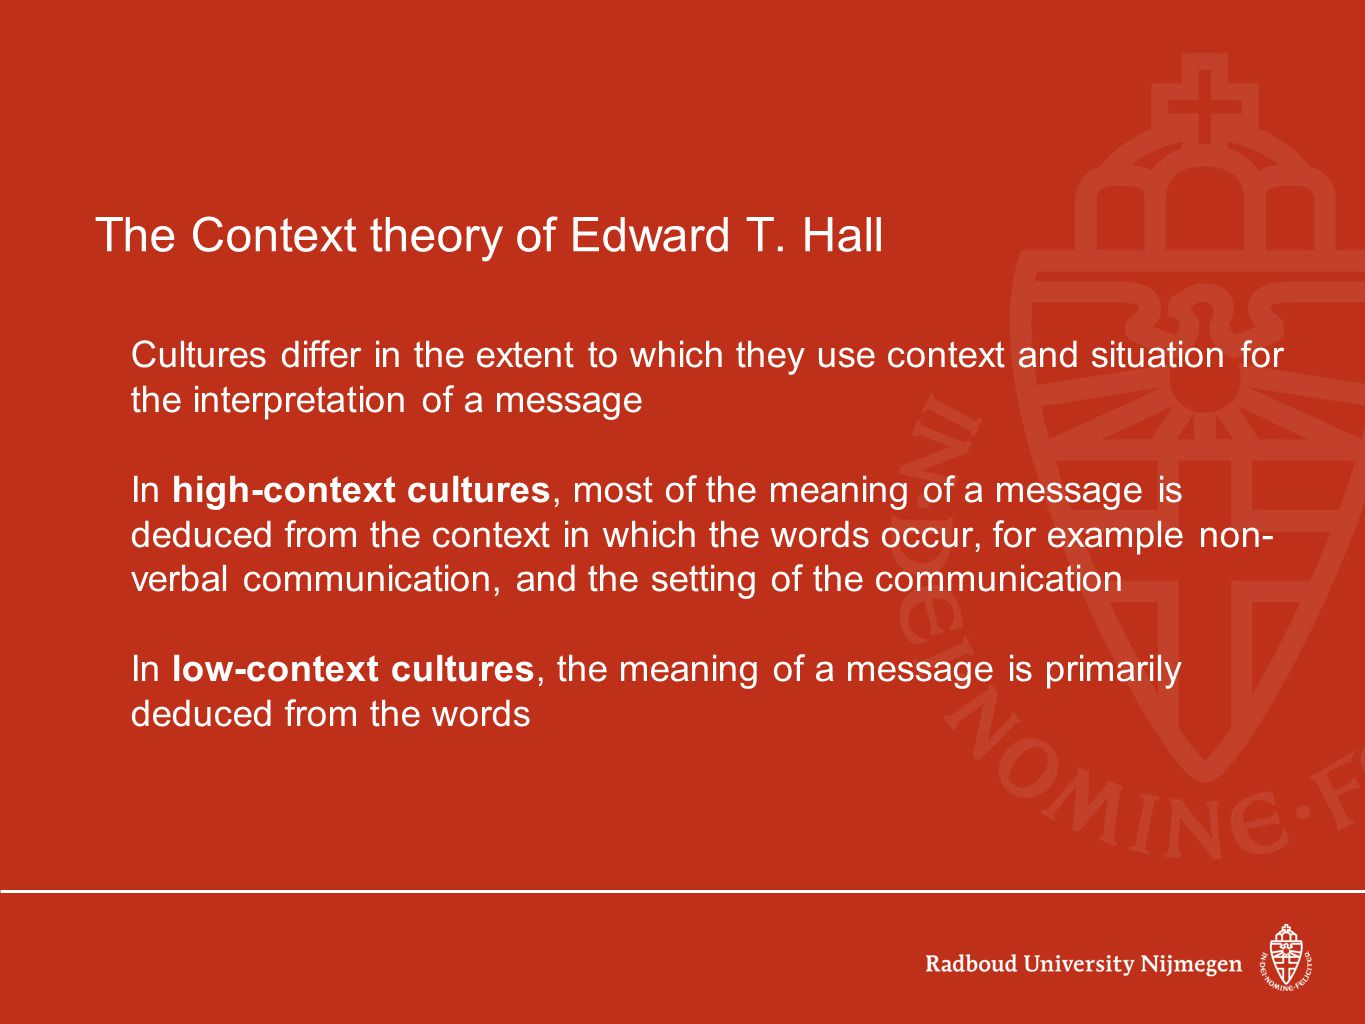 The Context theory of Edward T. Hall